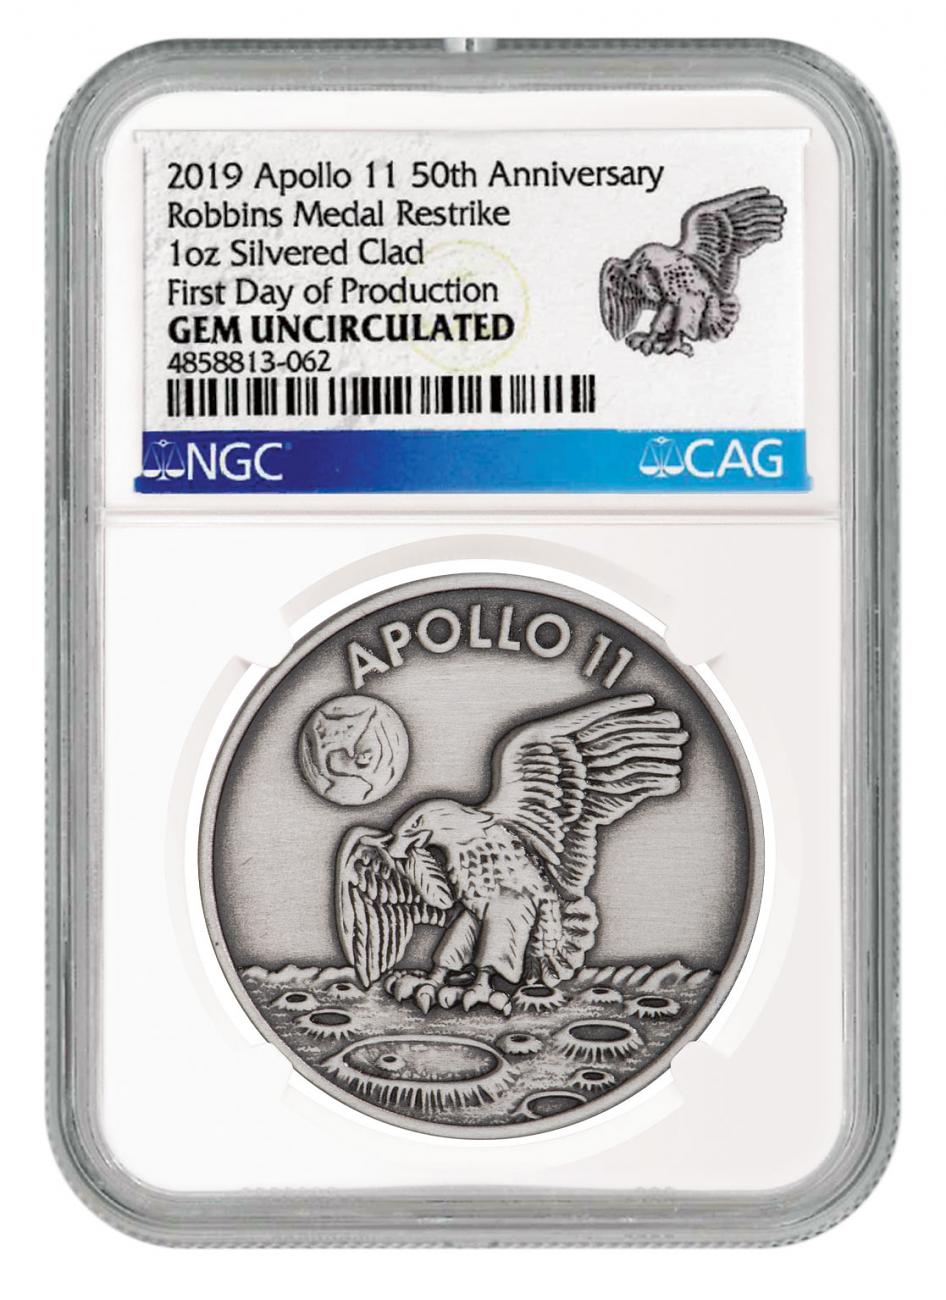 1969-2019 Apollo 11 50th Anniversary Robbins Medals 1 oz Silver-Plated Antiqued Medal NGC GEM Unc First Day of Production